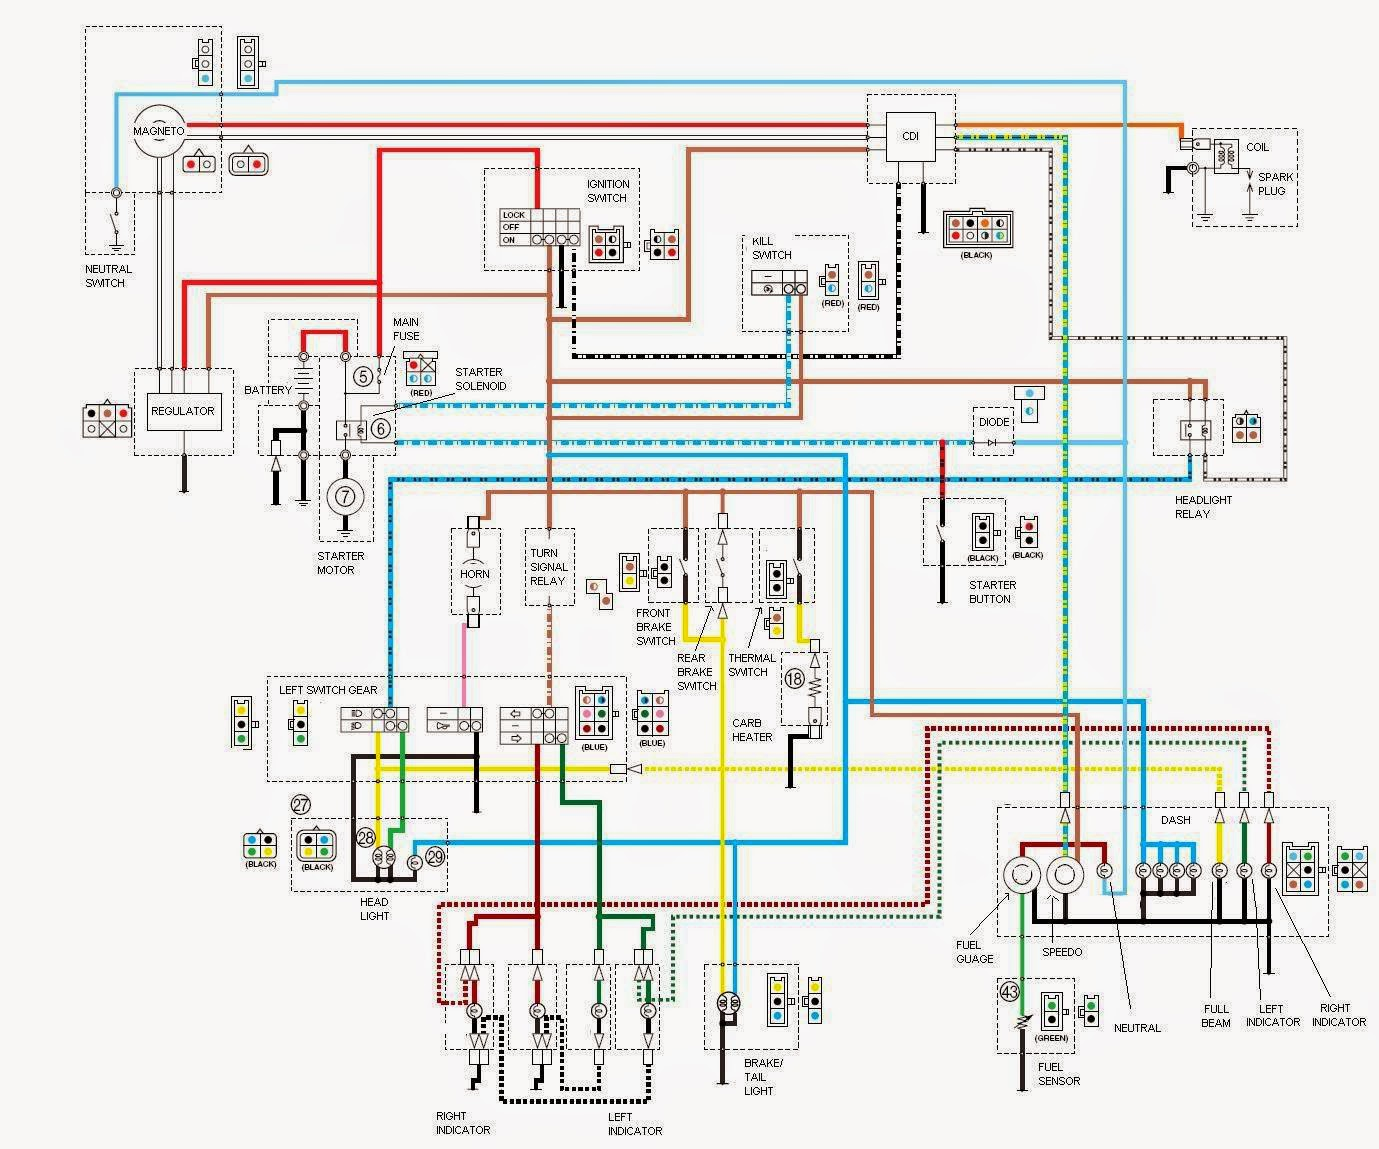 electronic flasher unit wiring diagram driving light yamaha ybr 125 owner blog : electrical system , diagrams and components